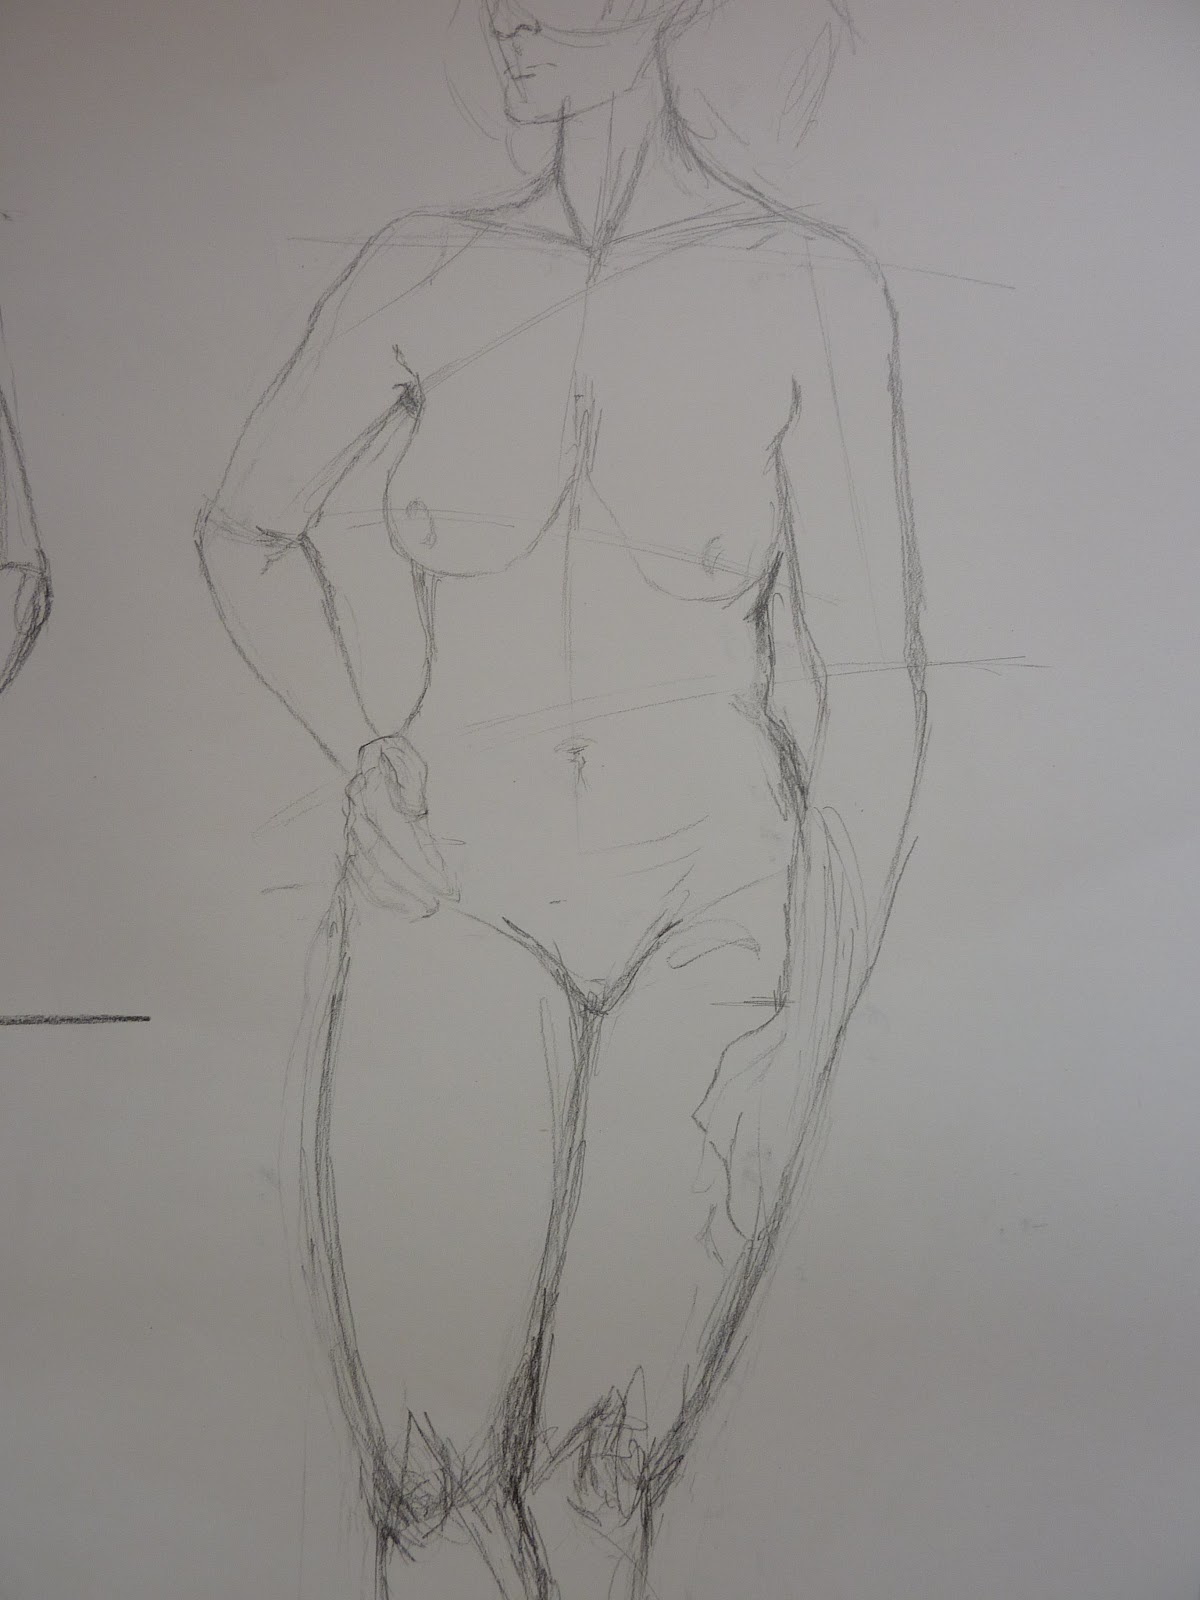 Pin on Drawing the nude